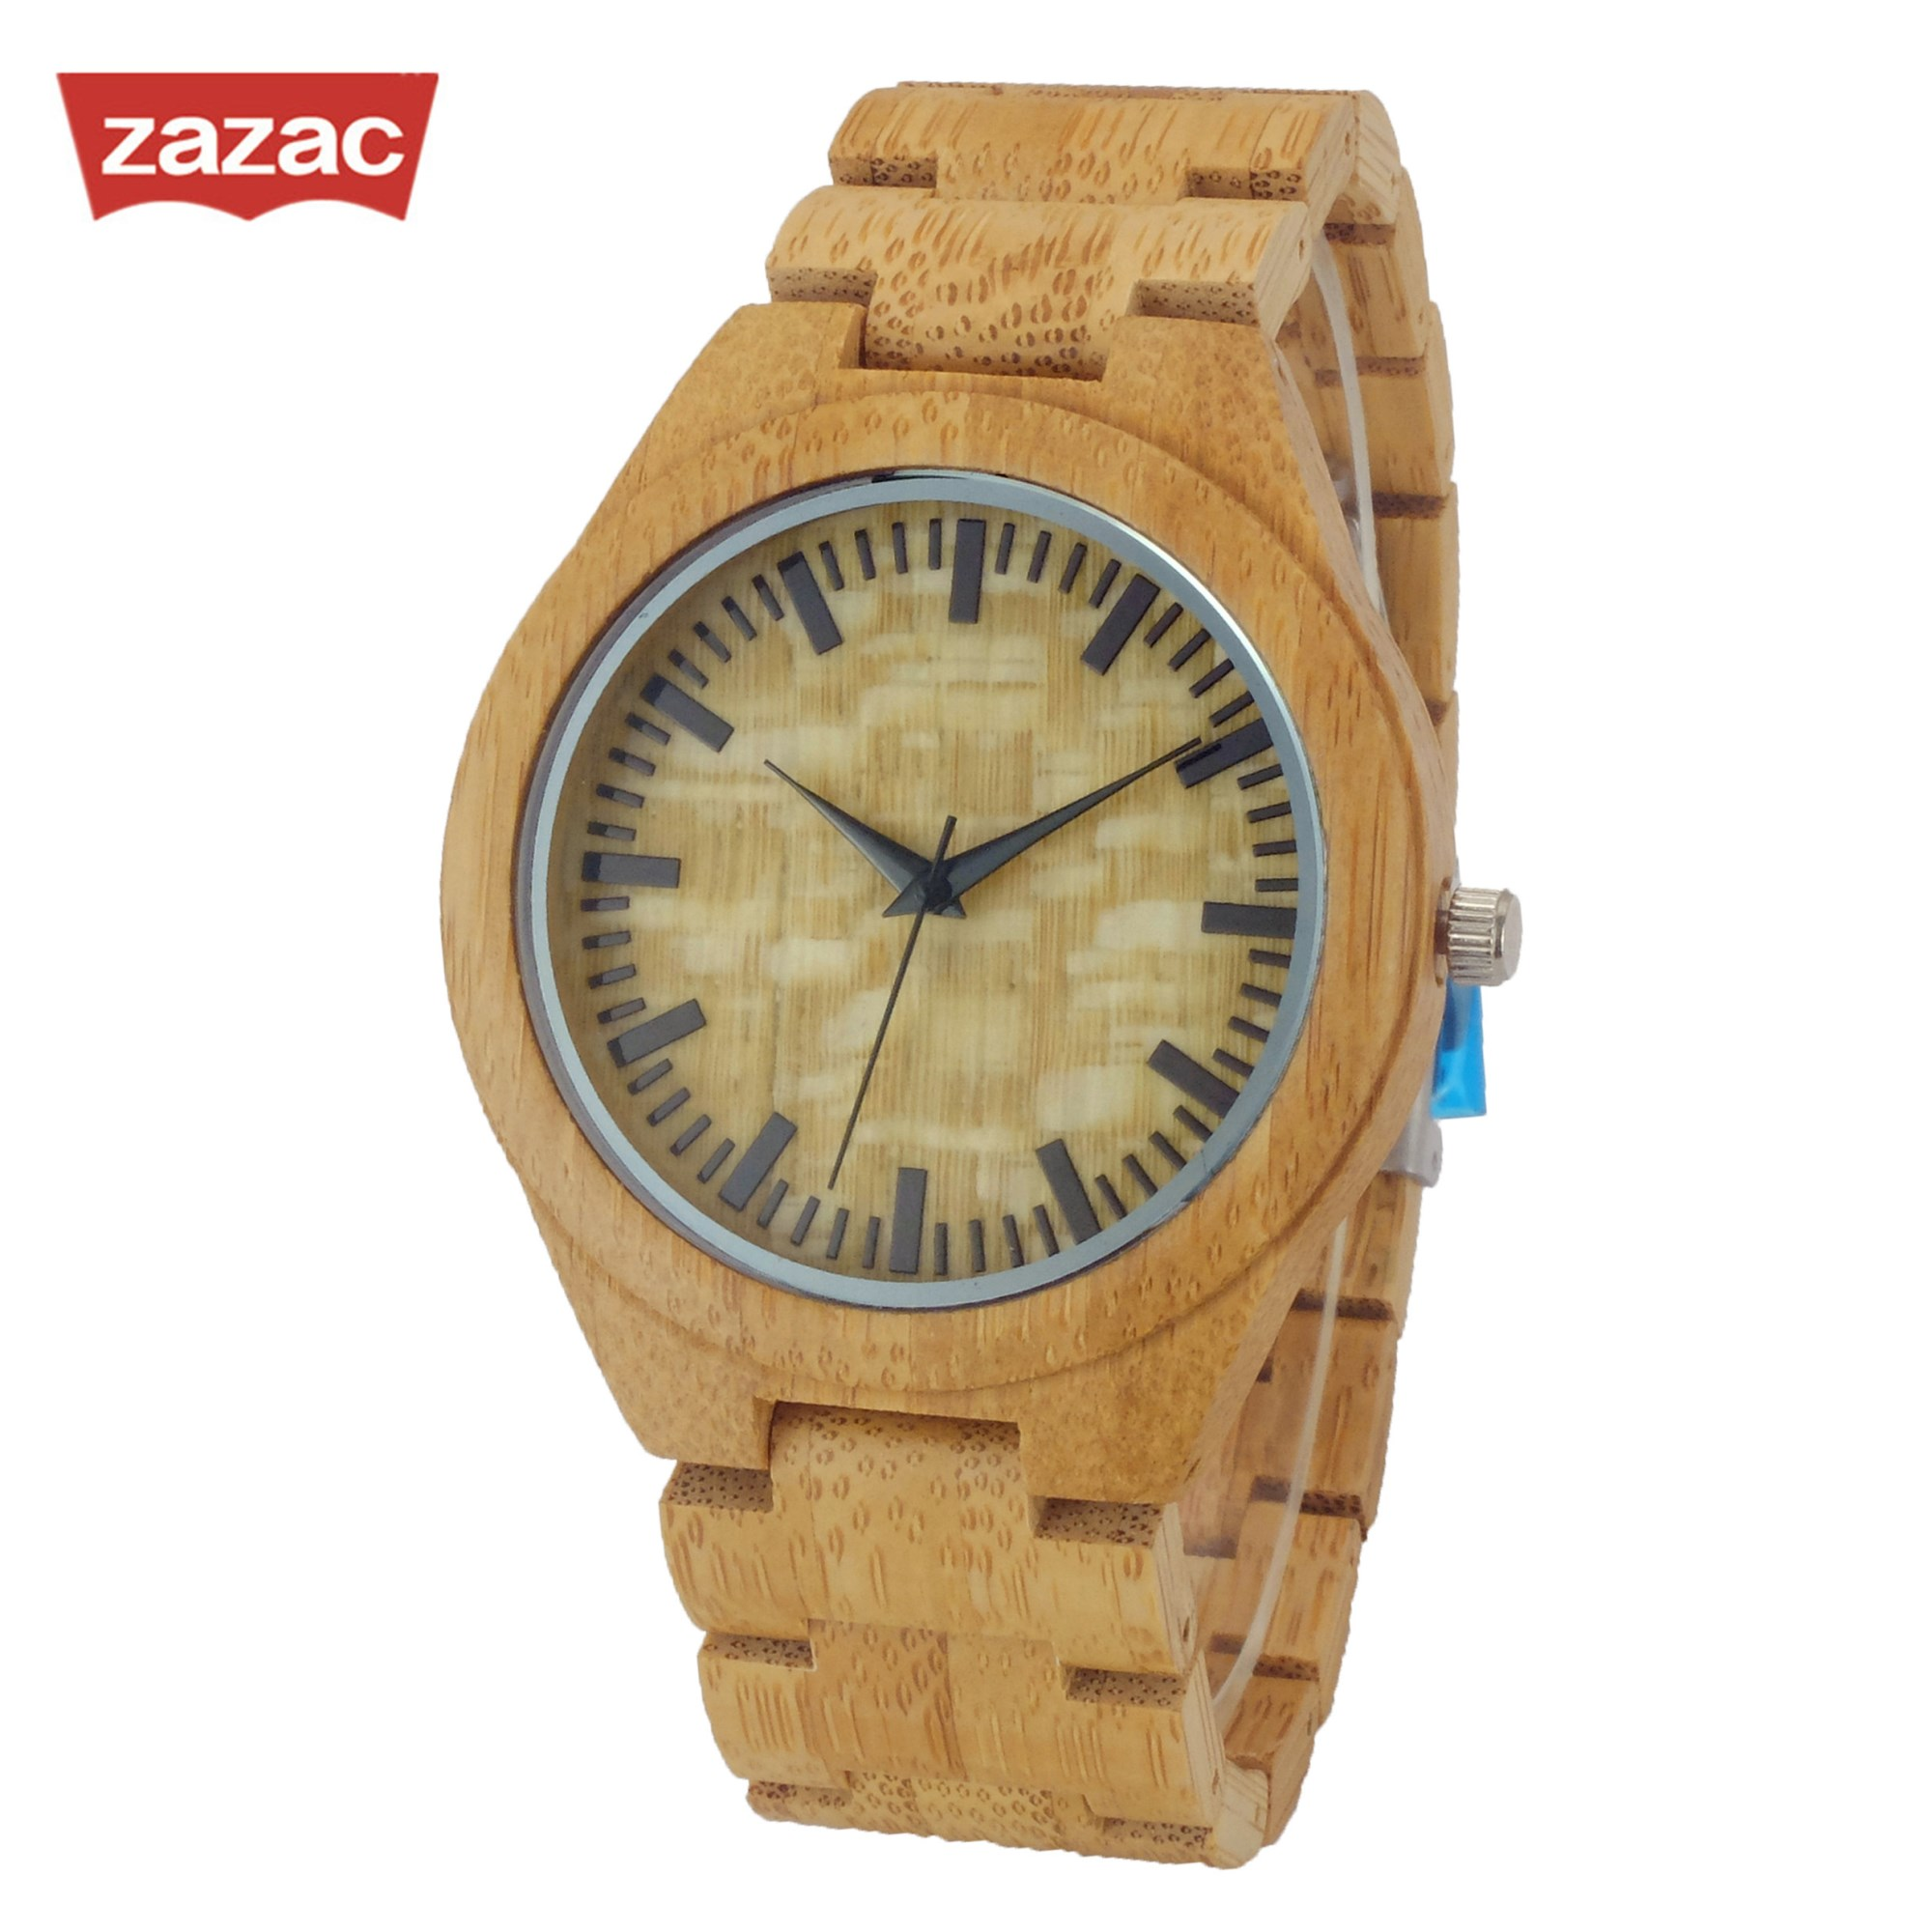 zazac brand mens watch full bamboo wristwatches casual. Black Bedroom Furniture Sets. Home Design Ideas